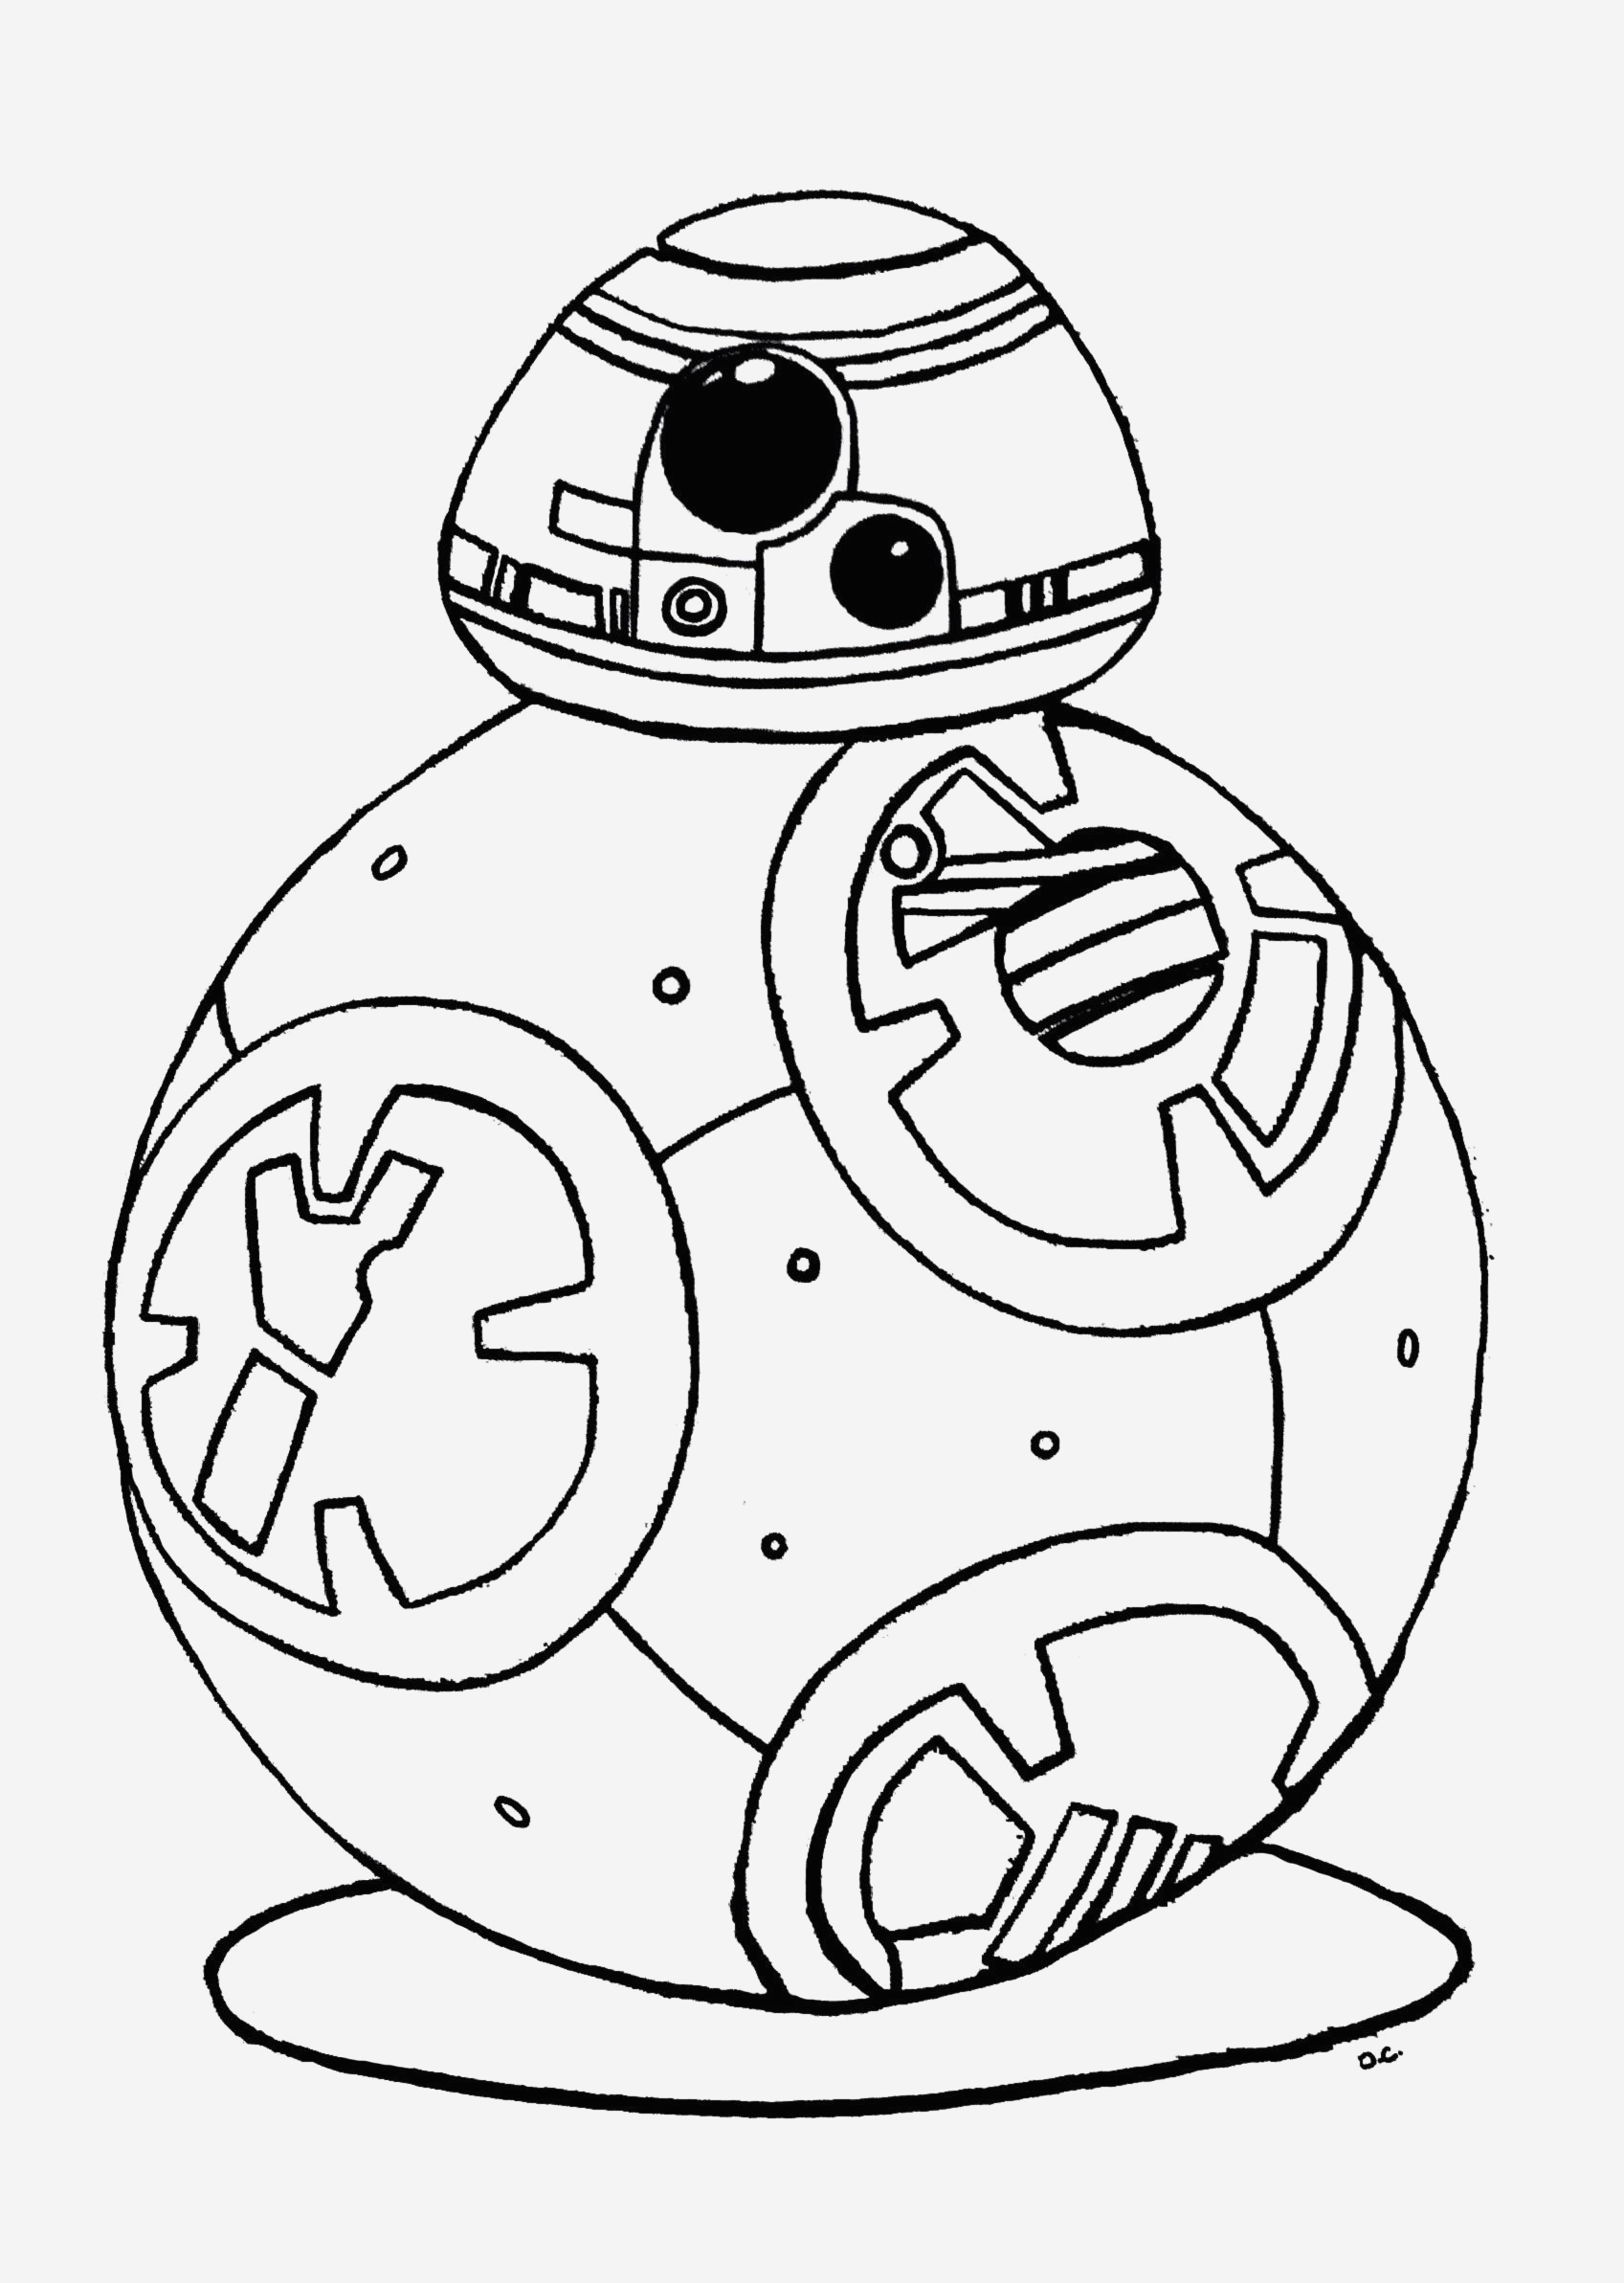 Coloriage Lego Star Wars Fresh Coloring Pages Coloriage Dark Maul Lego Star Wars Darth Of Coloriage Lego Star Wars